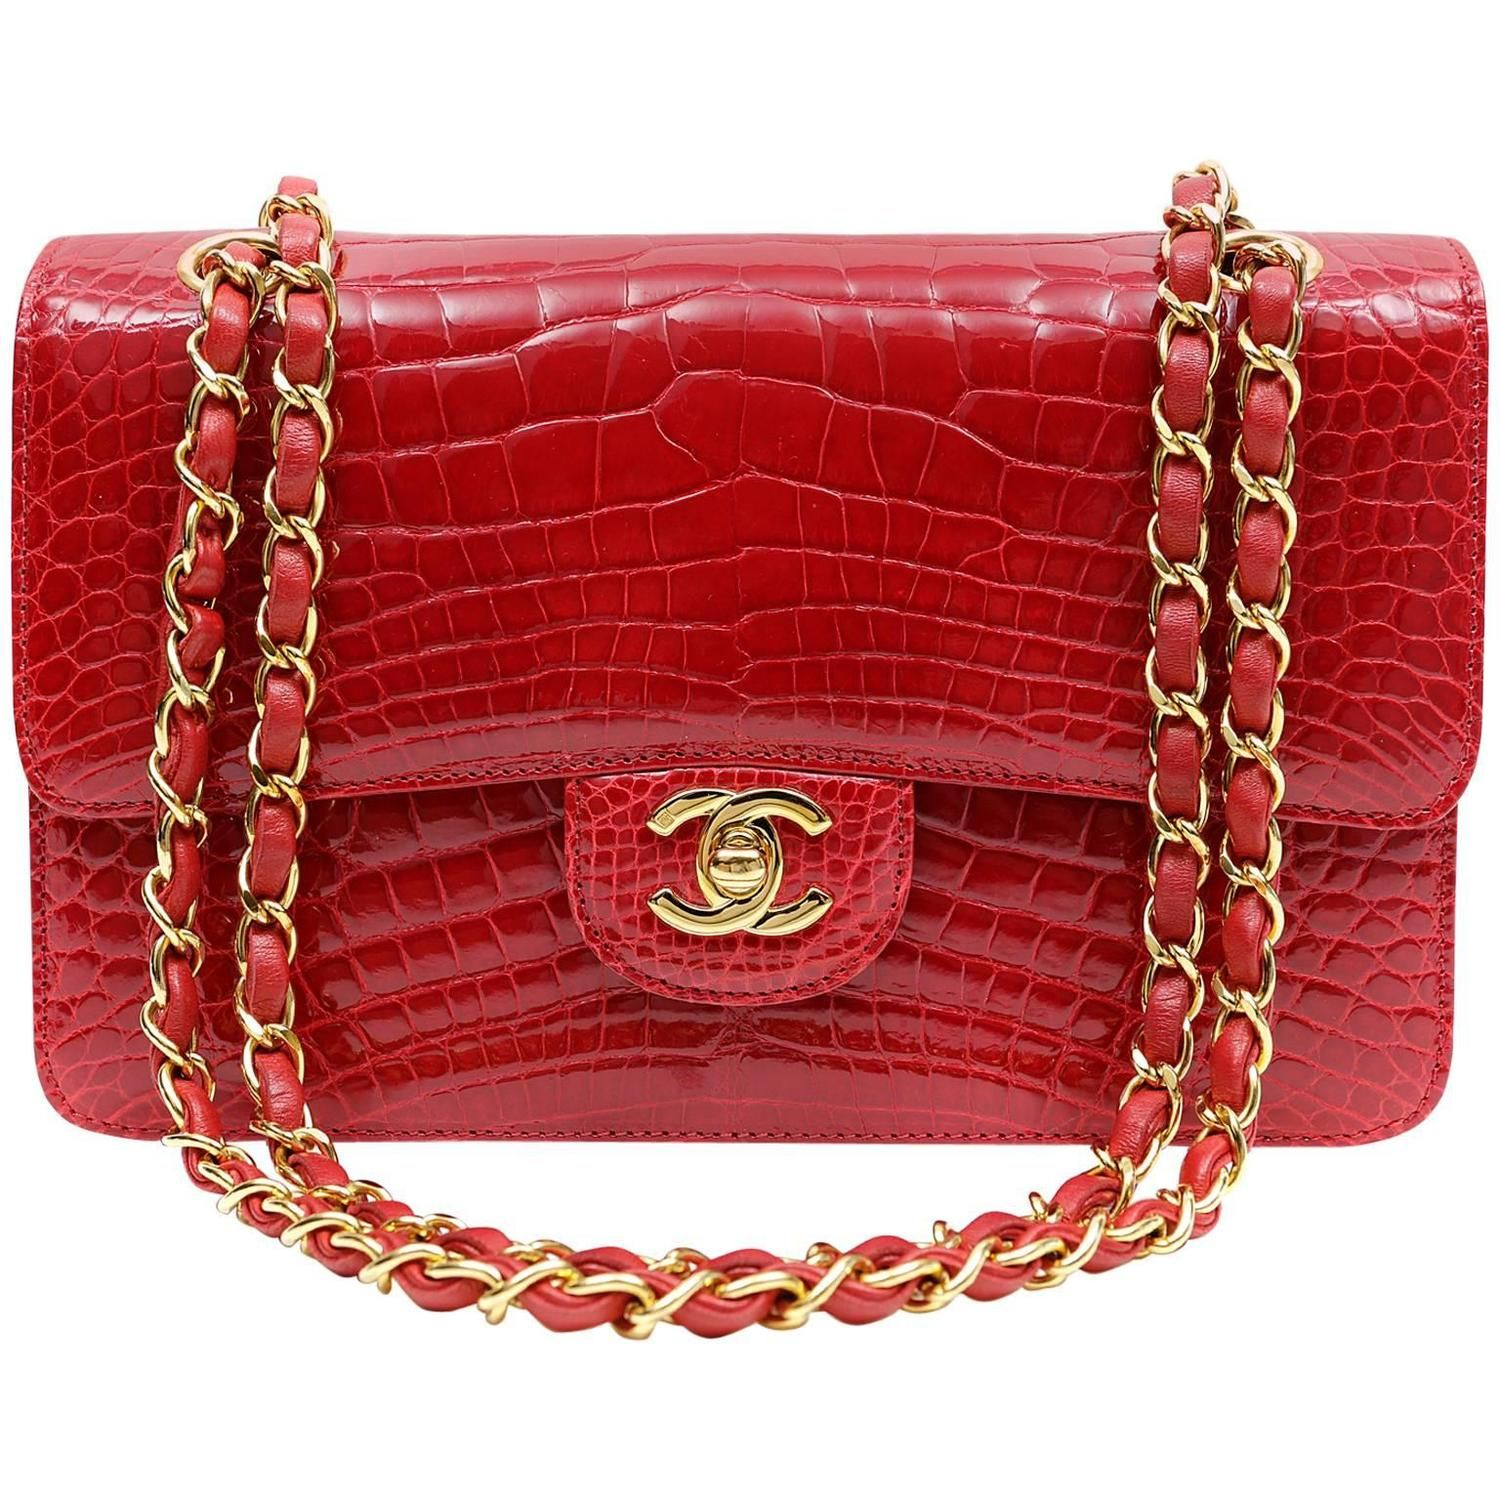 6927cb1614c7 Chanel Red Crocodile Classic Single Flap with Gold Hardware ...